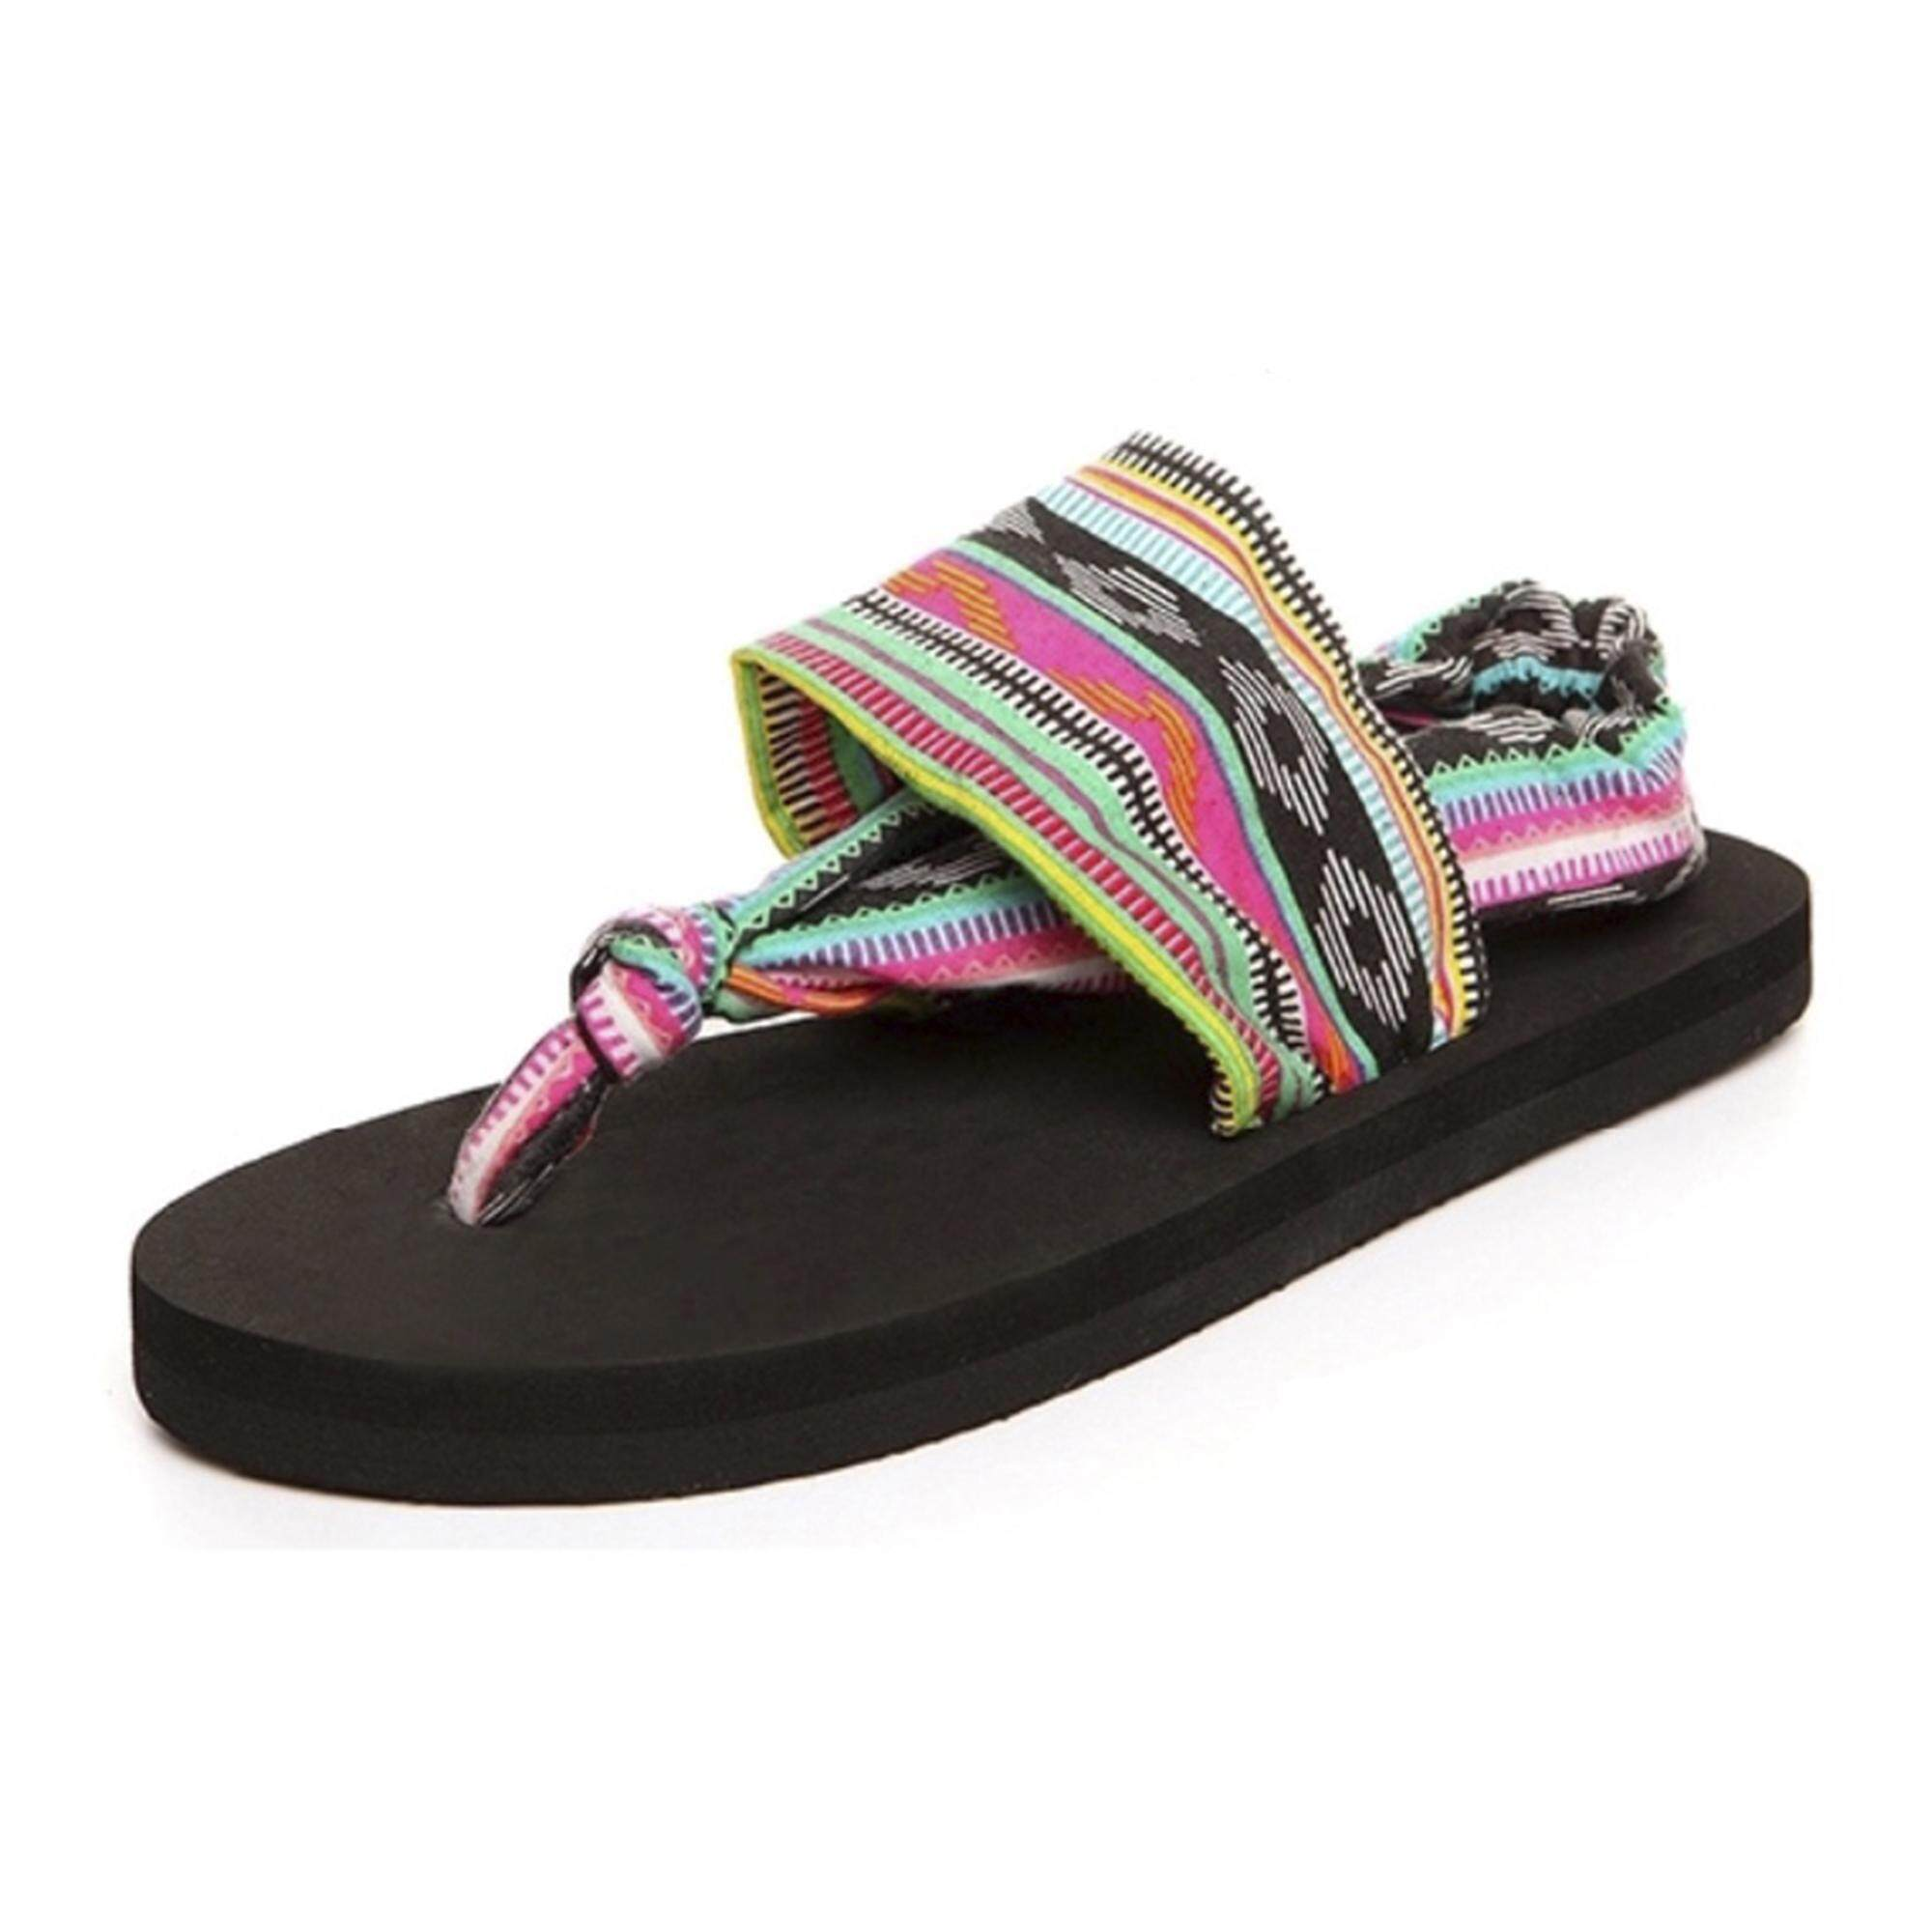 7a795f4ba554 Buy Sandals for Women Online at Best Prices in Malaysia